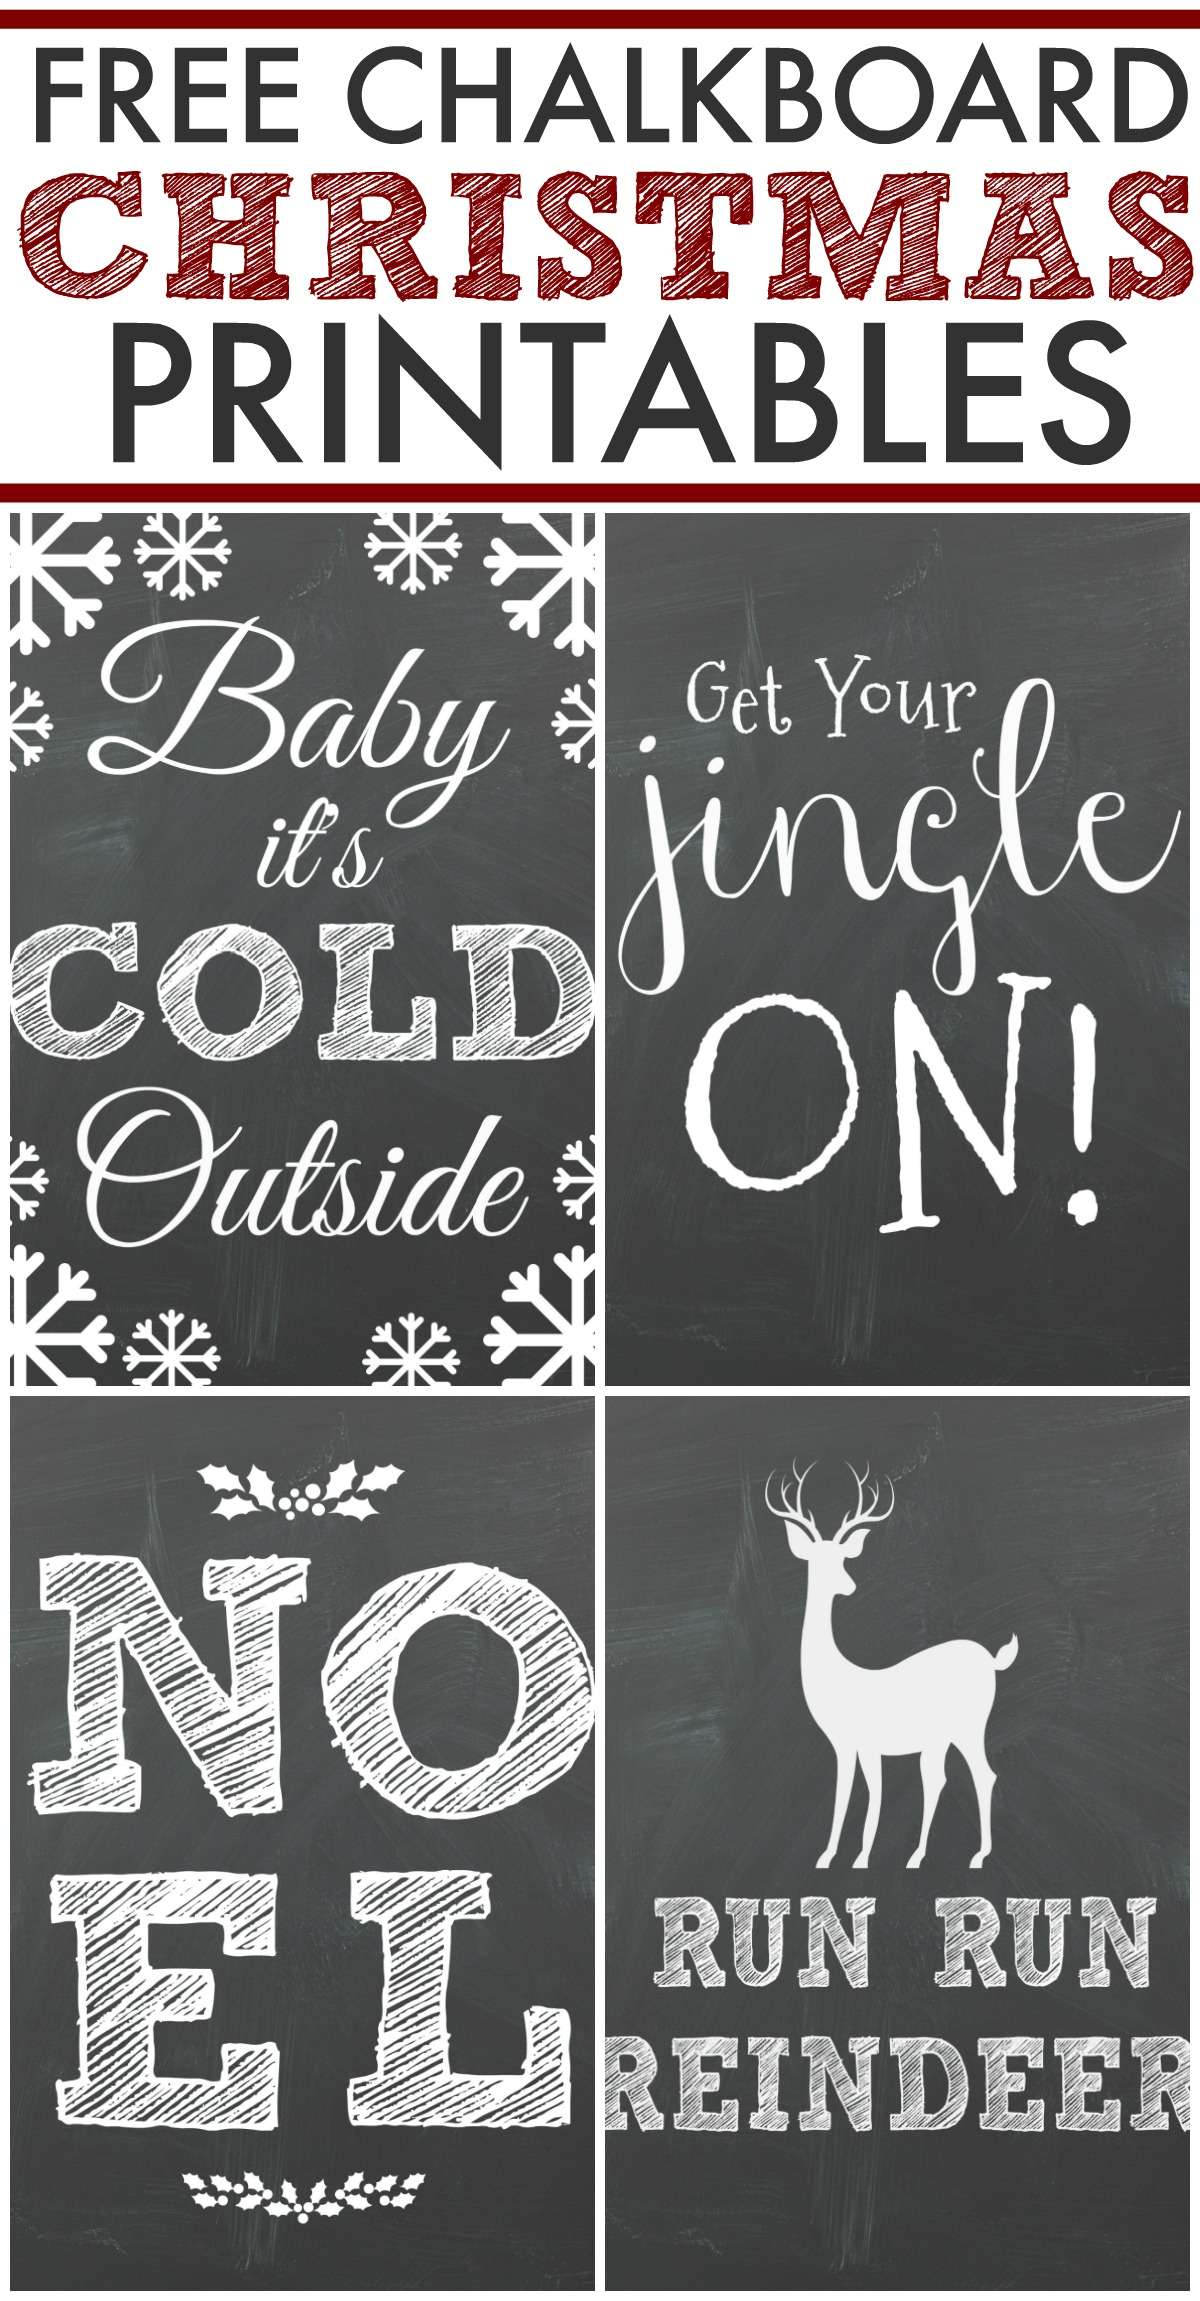 Free Chalkboard Christmas Printables! Perfect for a DIY Christmas Gallery Wall.